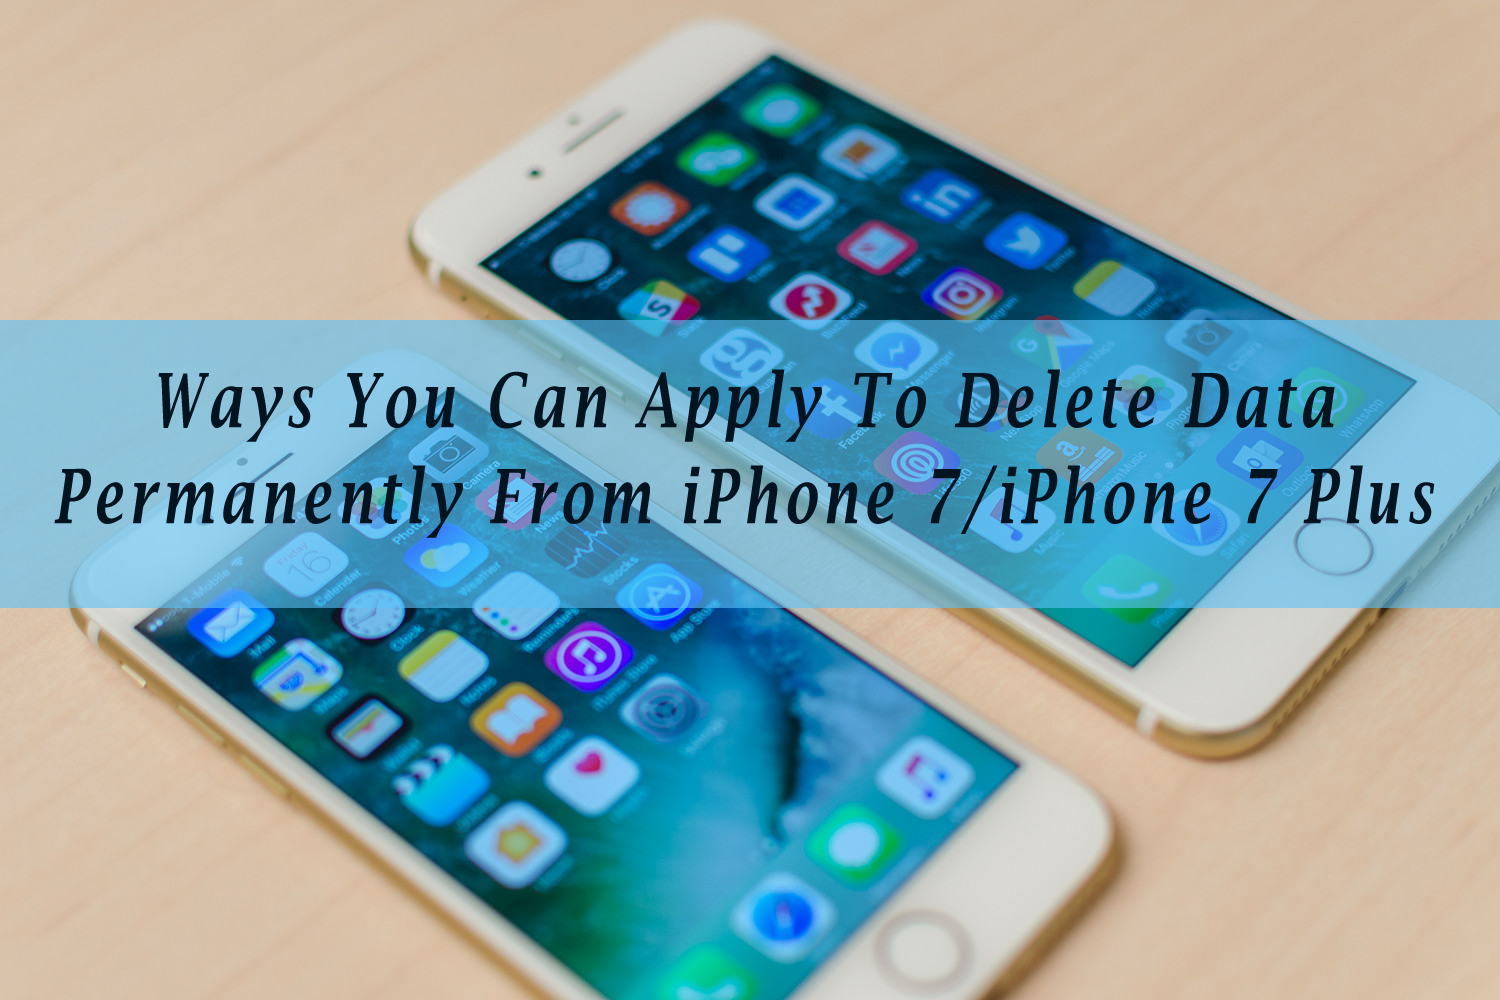 Ways You Can Apply To Delete Data Permanently From iPhone 7/7 Plus